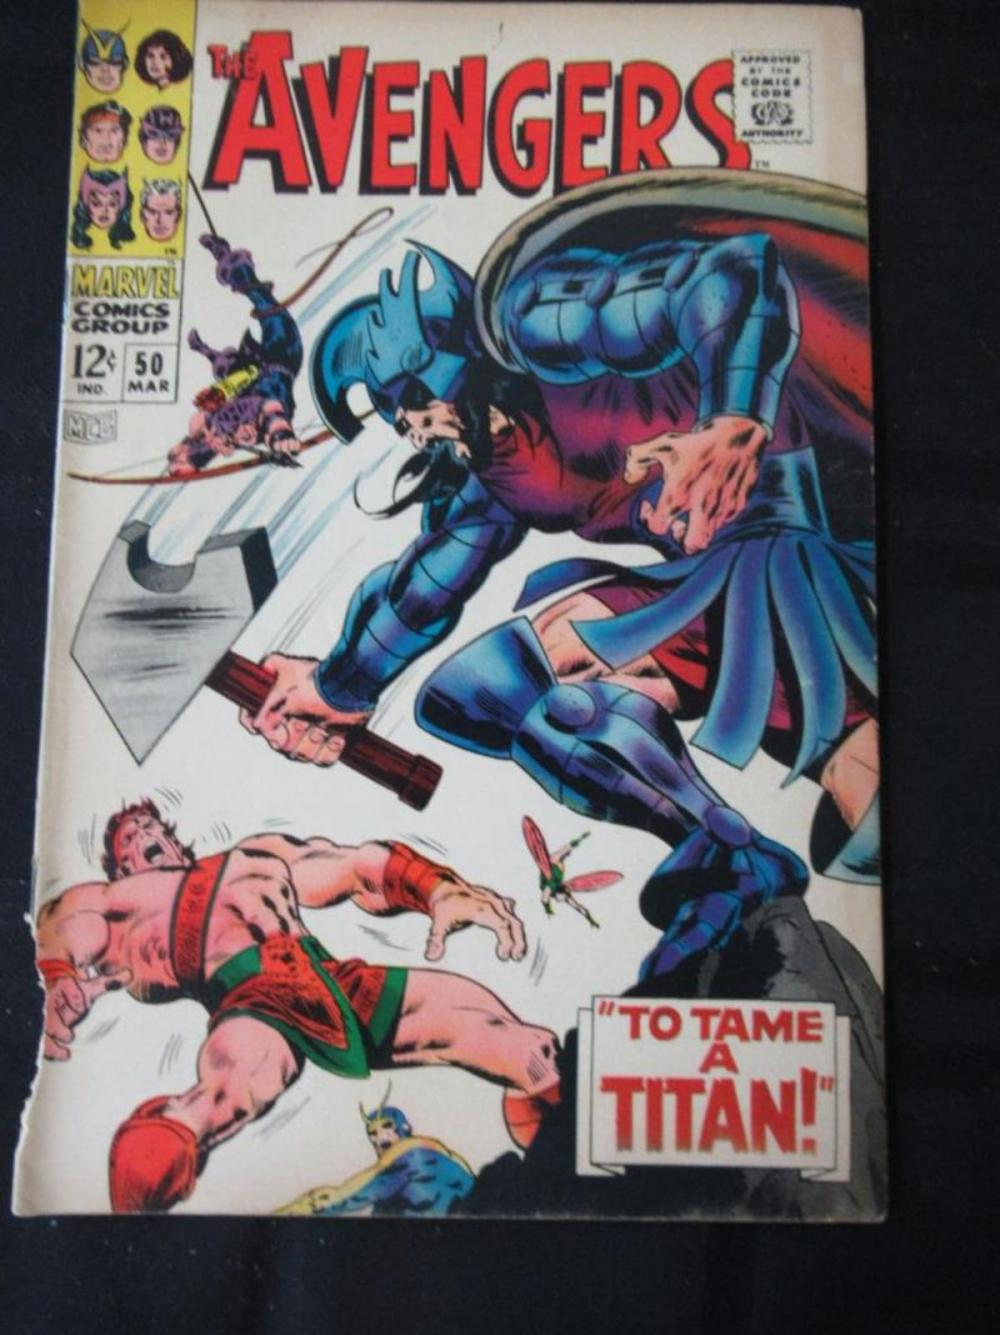 Lot 322: The Avengers 12c #50 To Tame a Titan